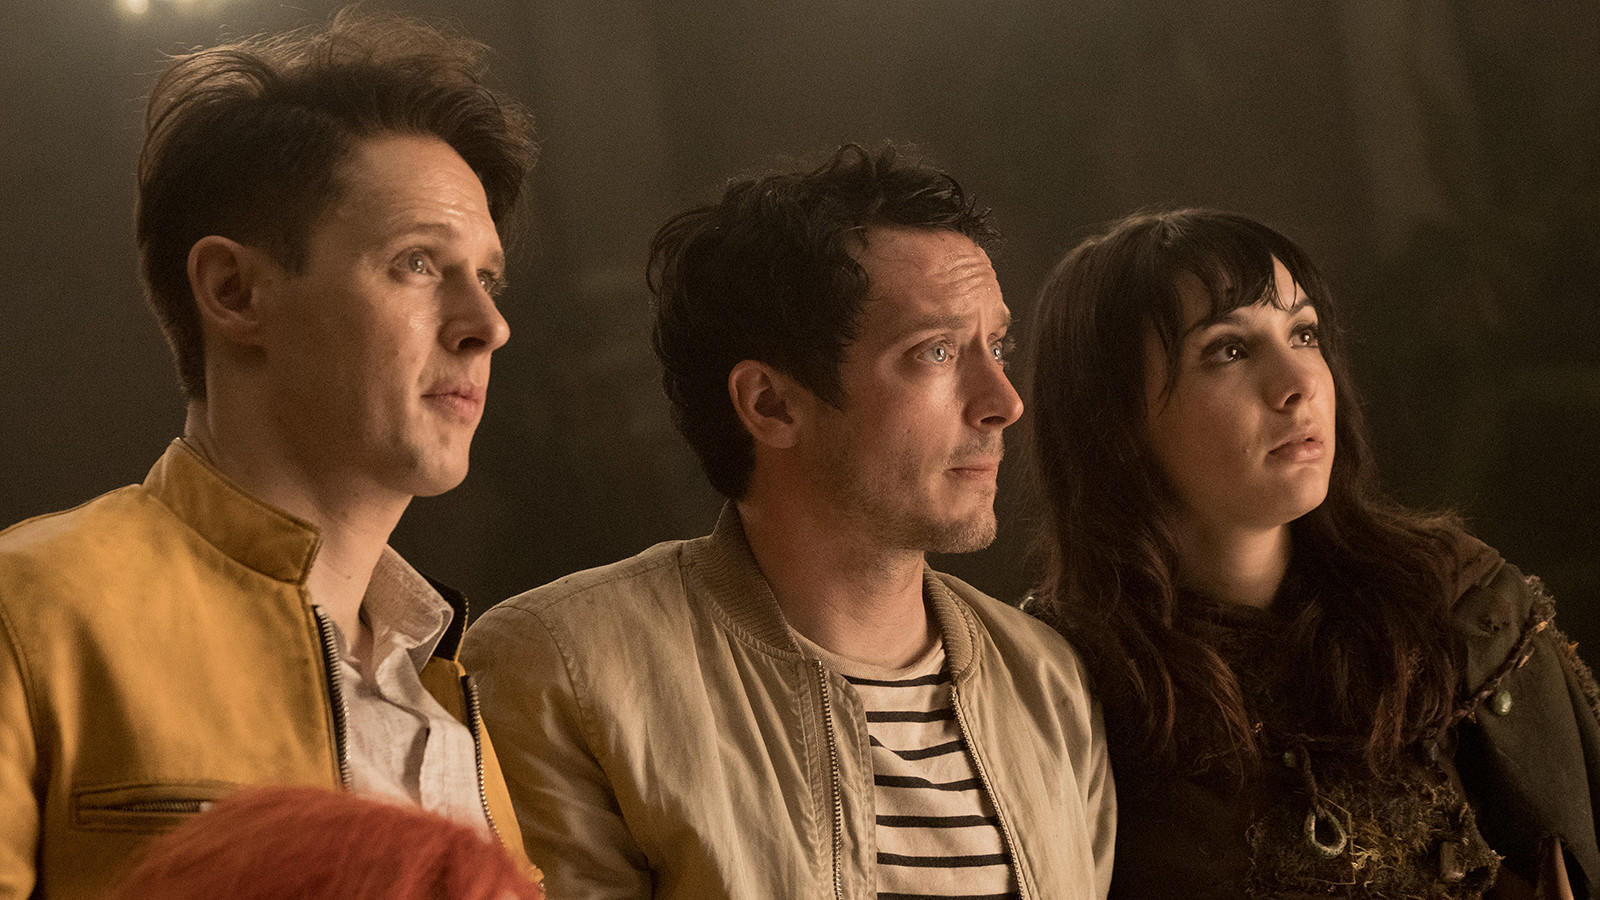 Saturday's TV highlights and weekend talk shows: 'Dirk Gently' s Holistic Detective Agency' on BBC America